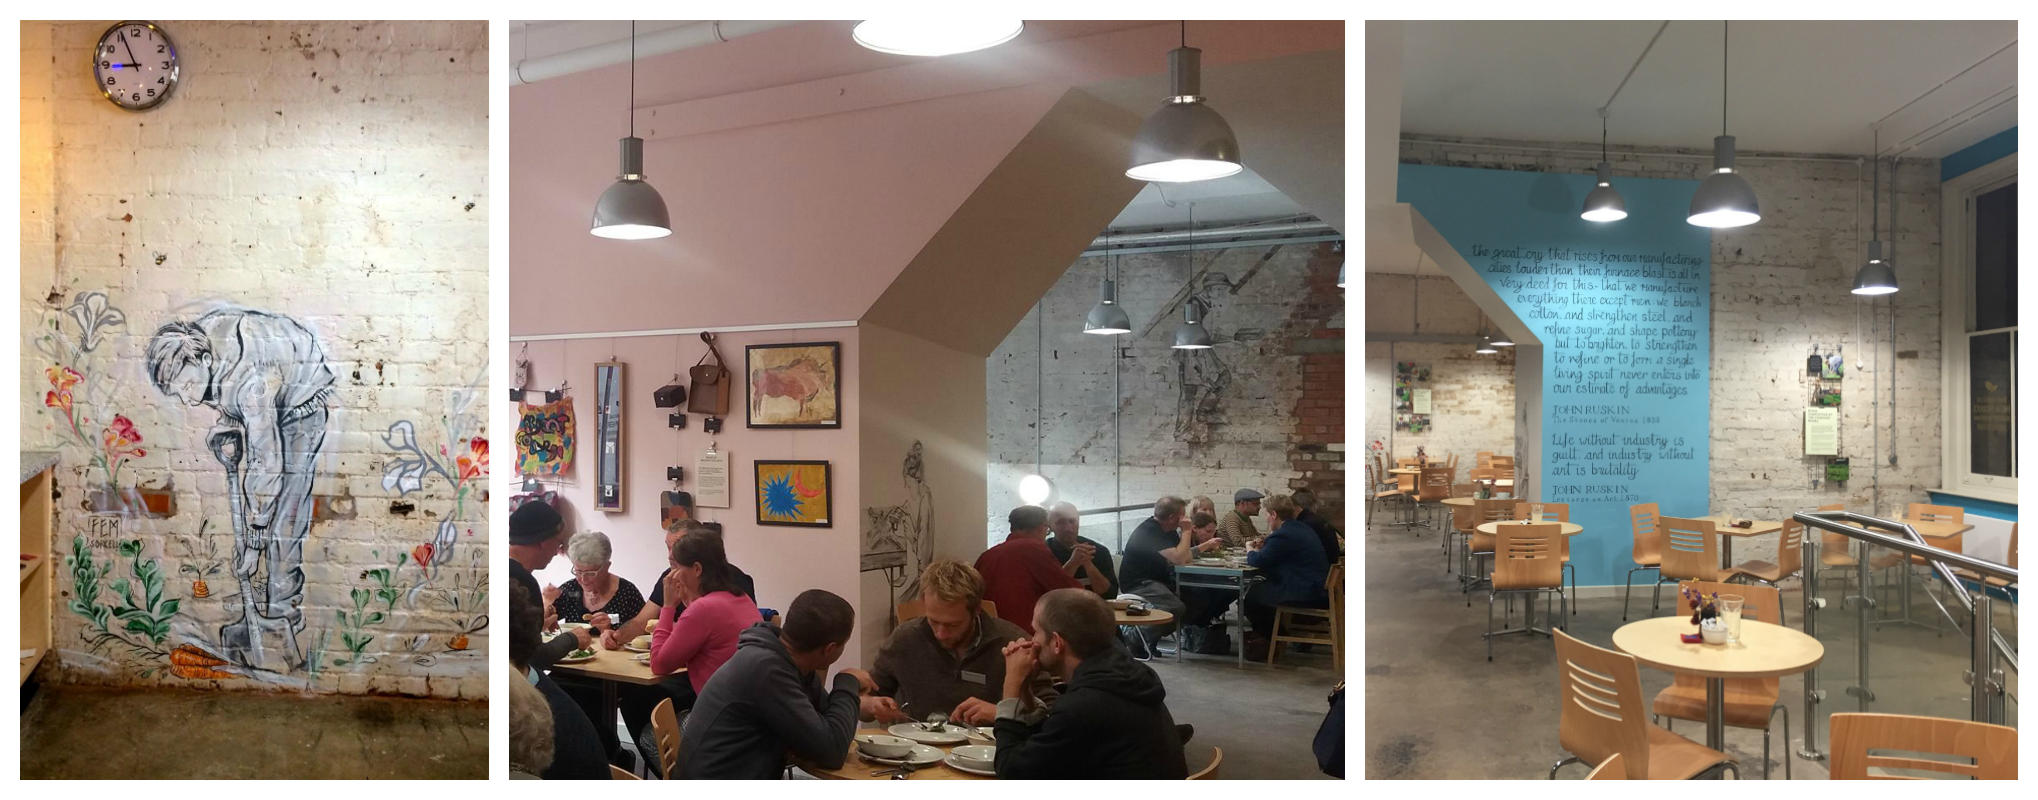 Images of The Hive cafe from different angles